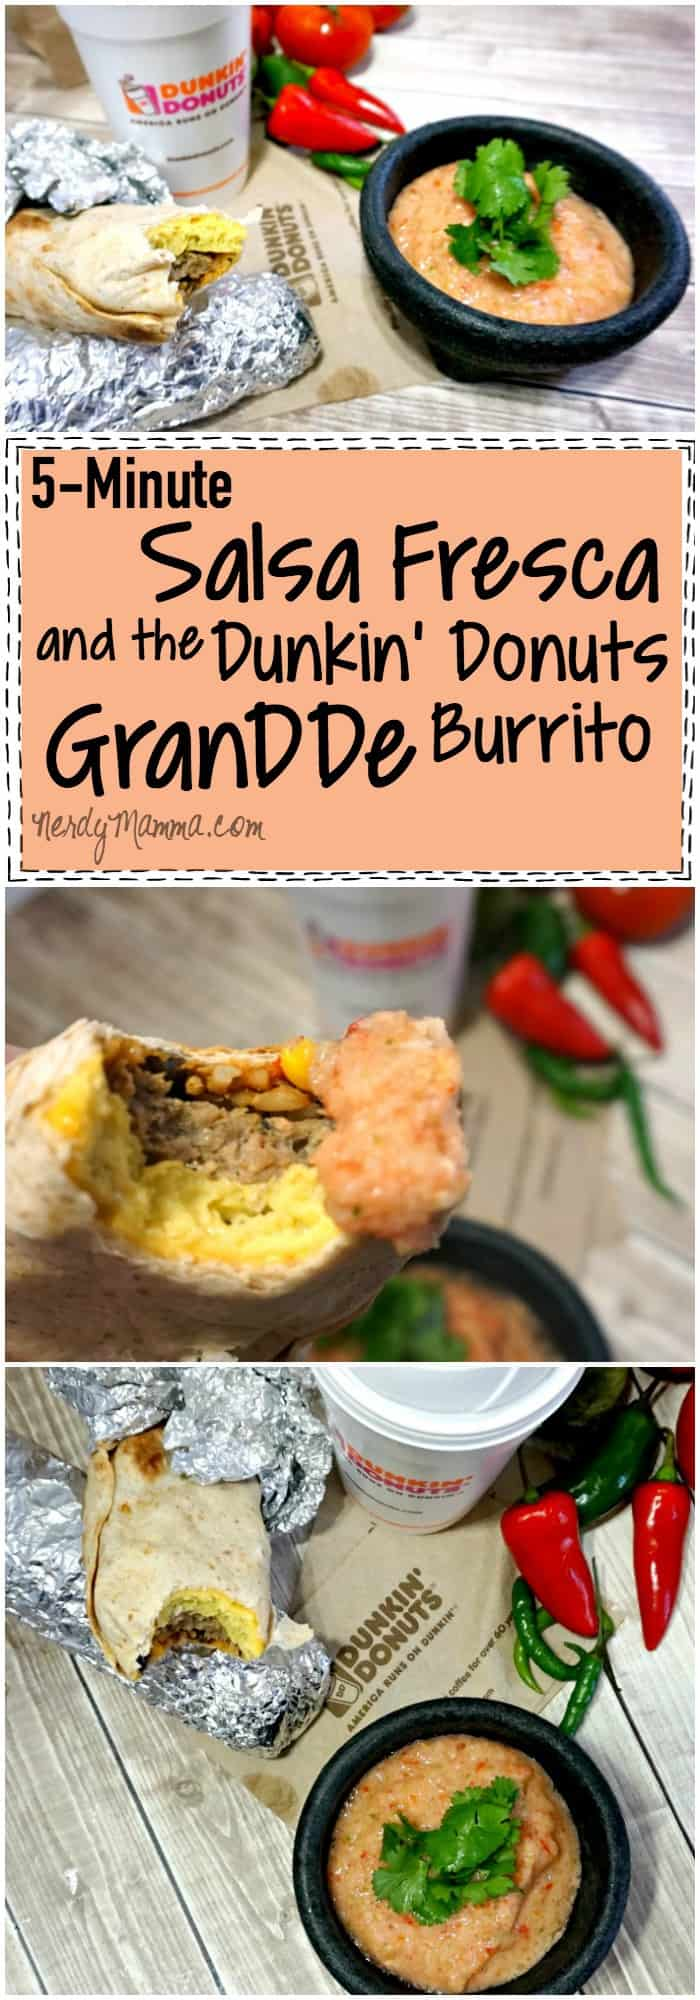 I love this 5-minute recipe for Salsa Fresca...and pairing it with the new Dunkin' Donuts GranDDe Burrito Genius!